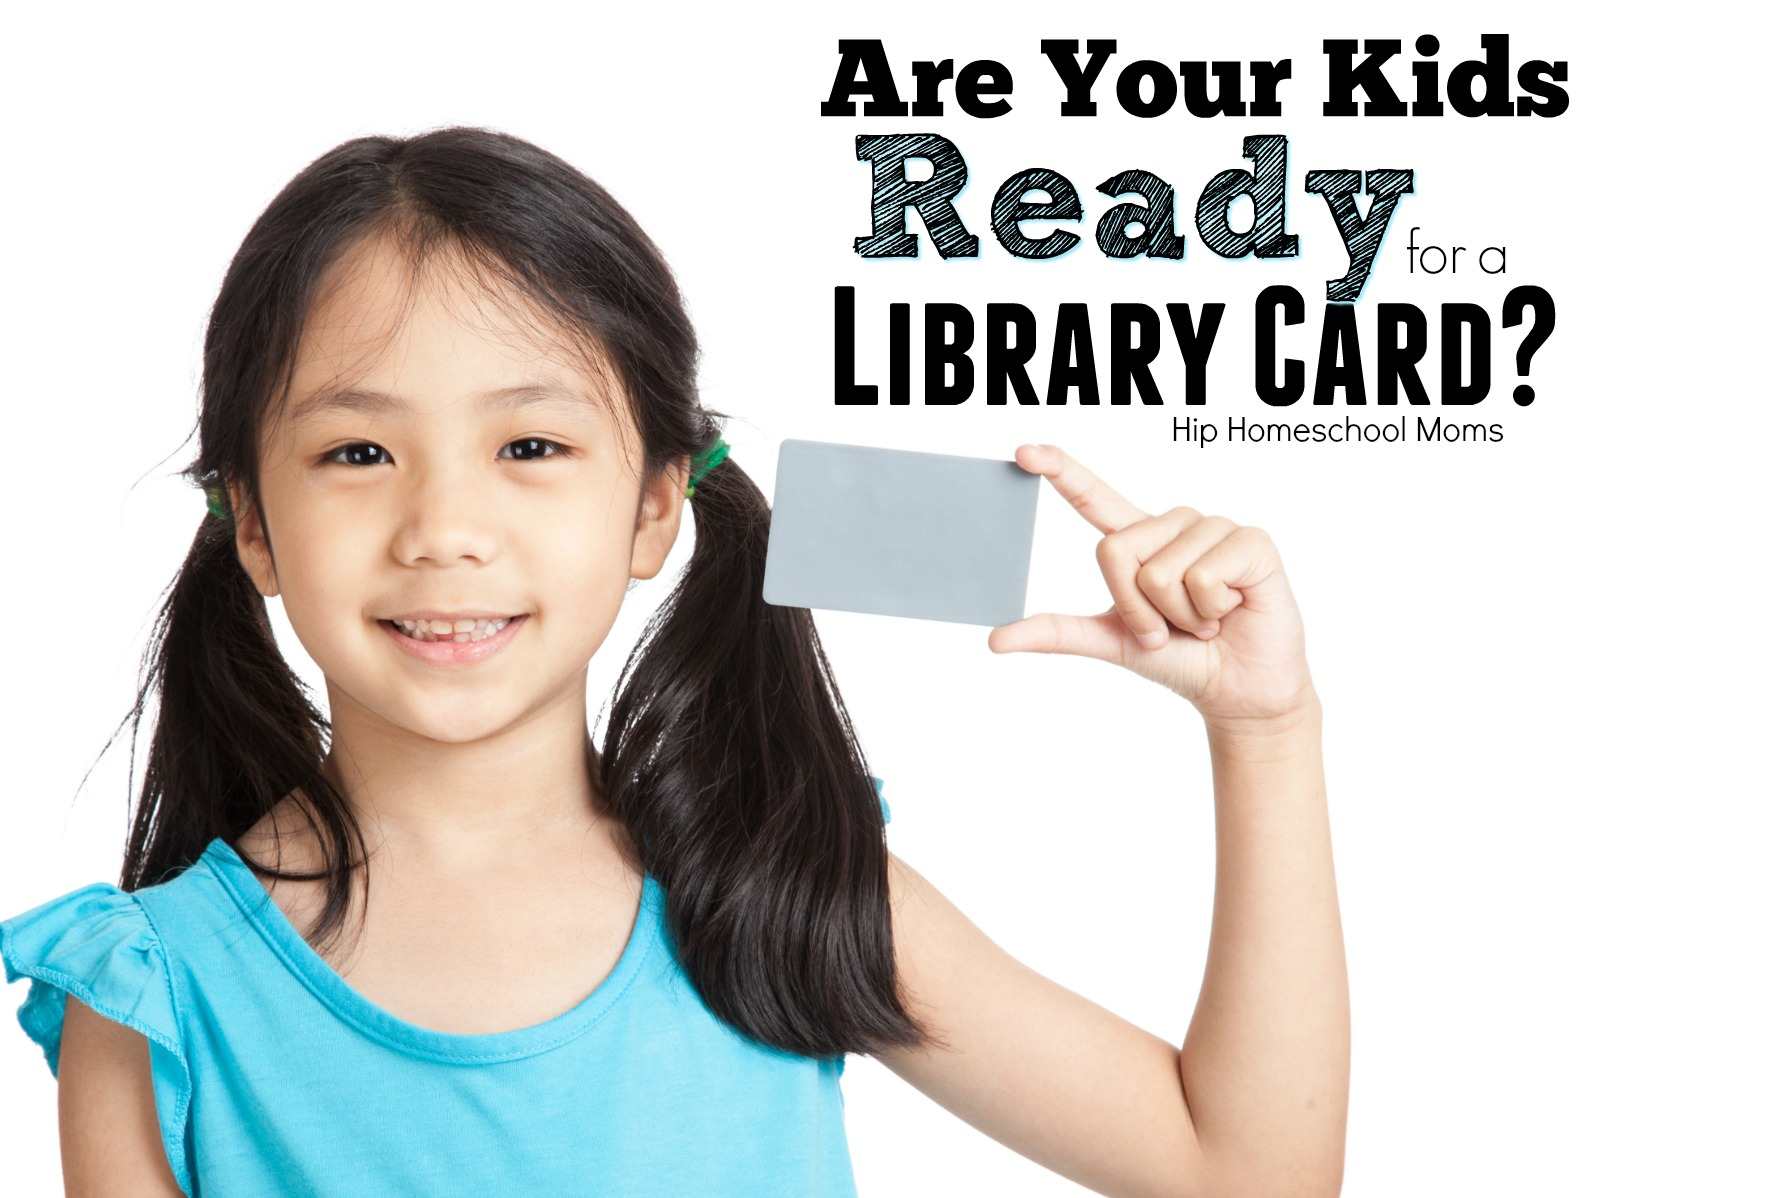 Are Your Kids Ready for a Library Card?